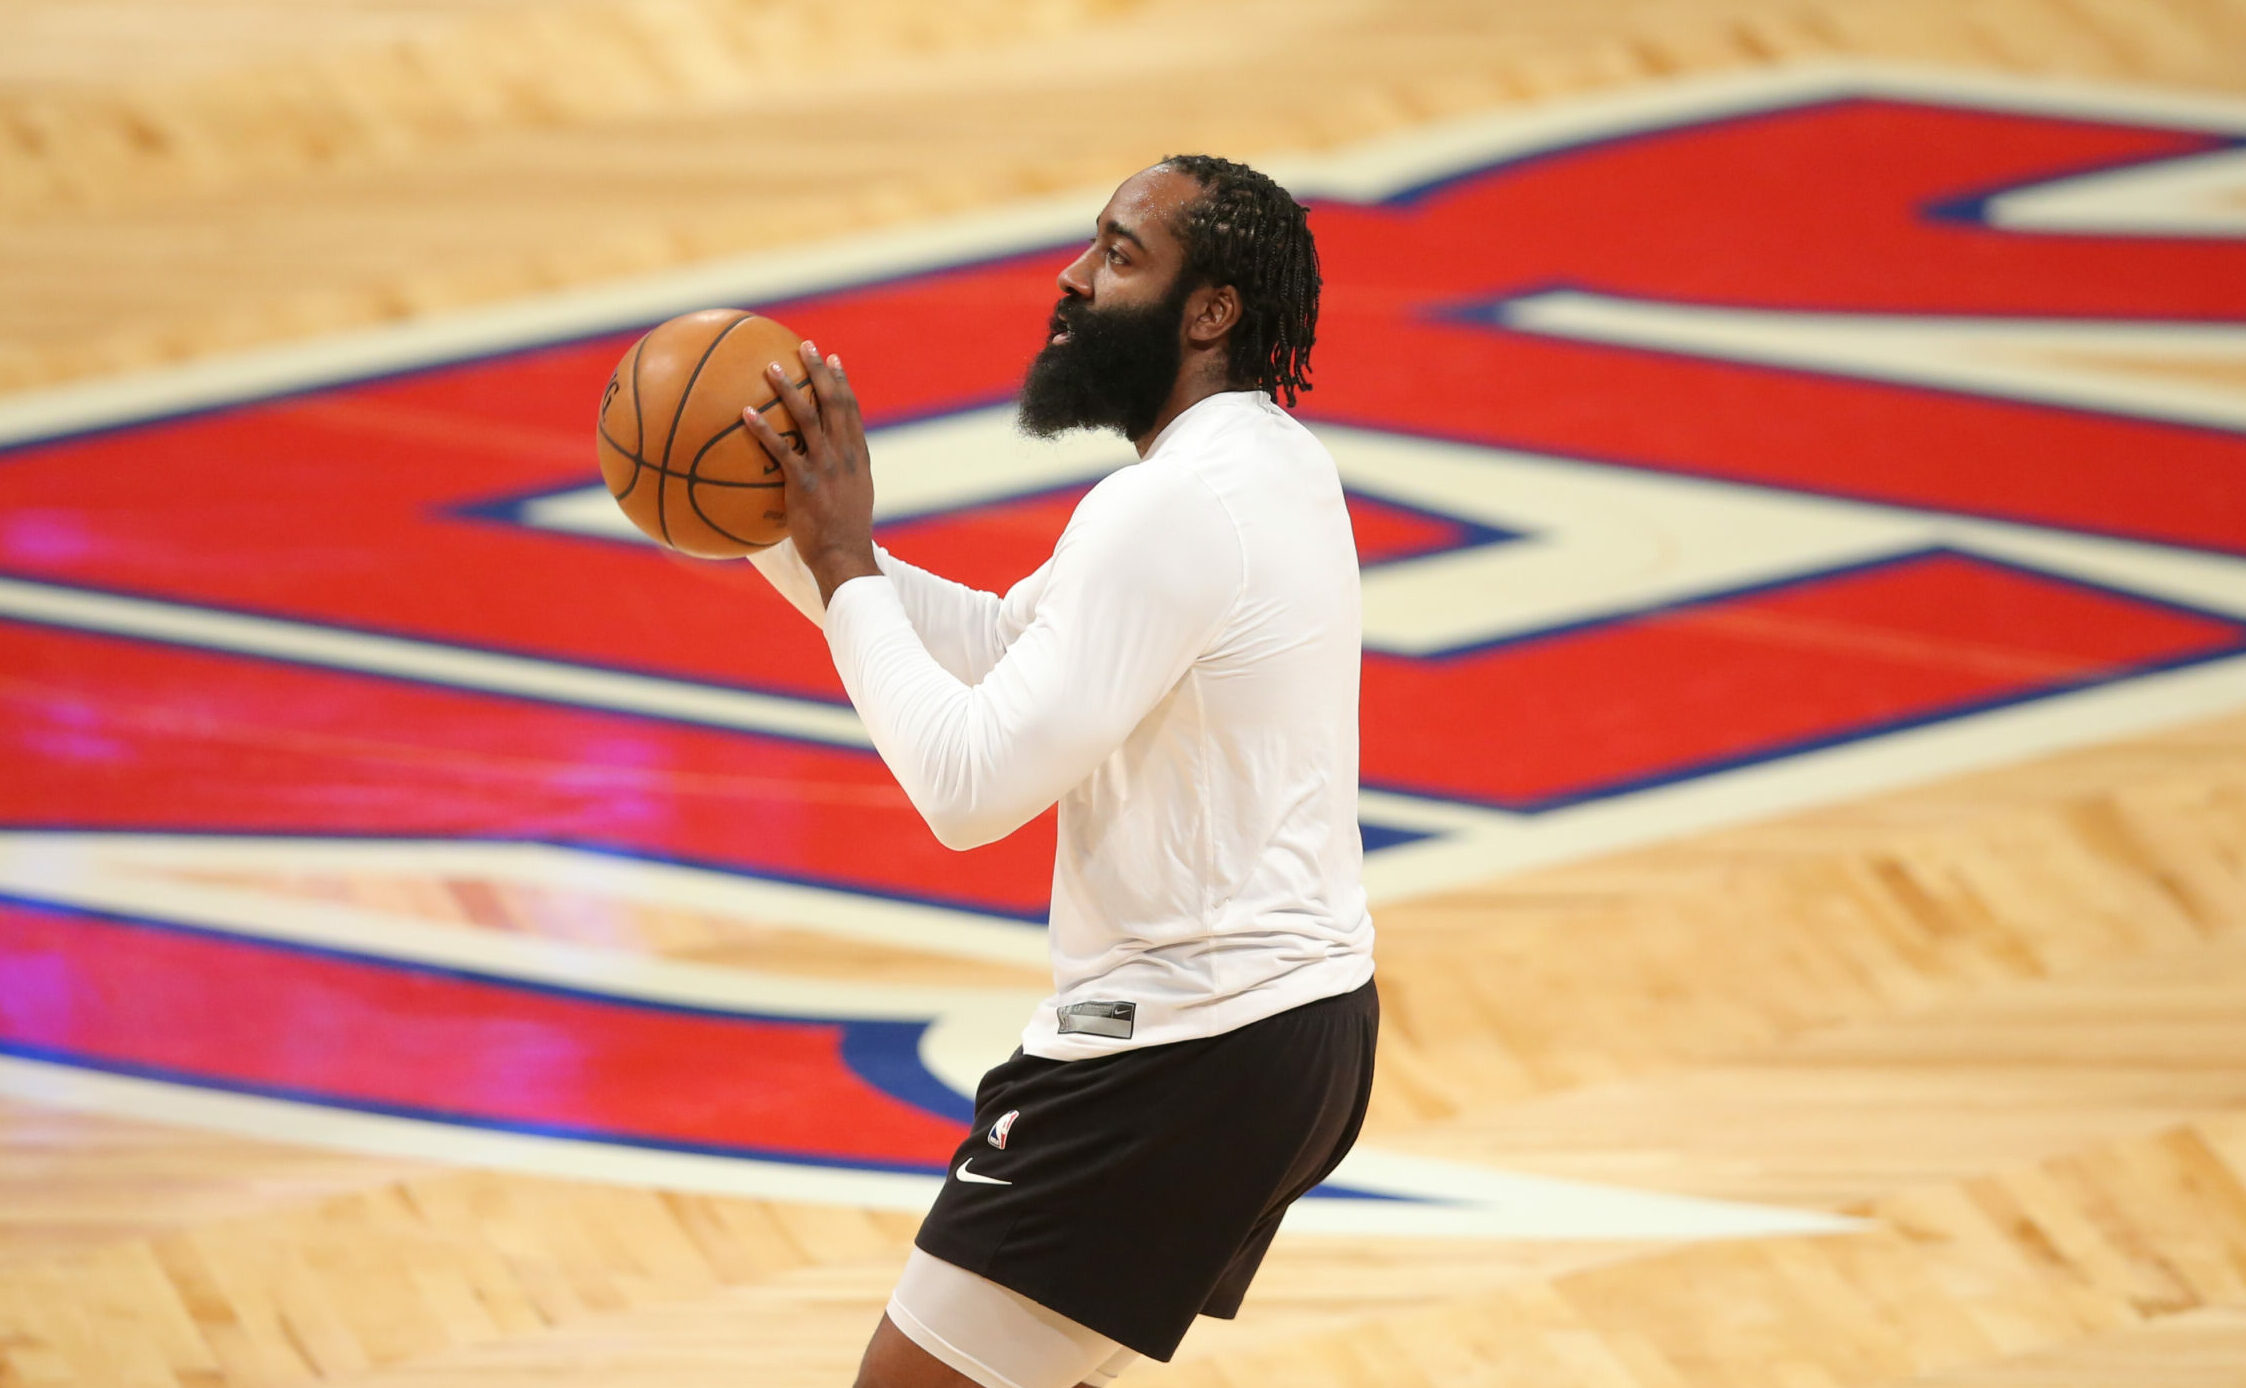 James Harden (hamstring) out indefinitely after suffering setback